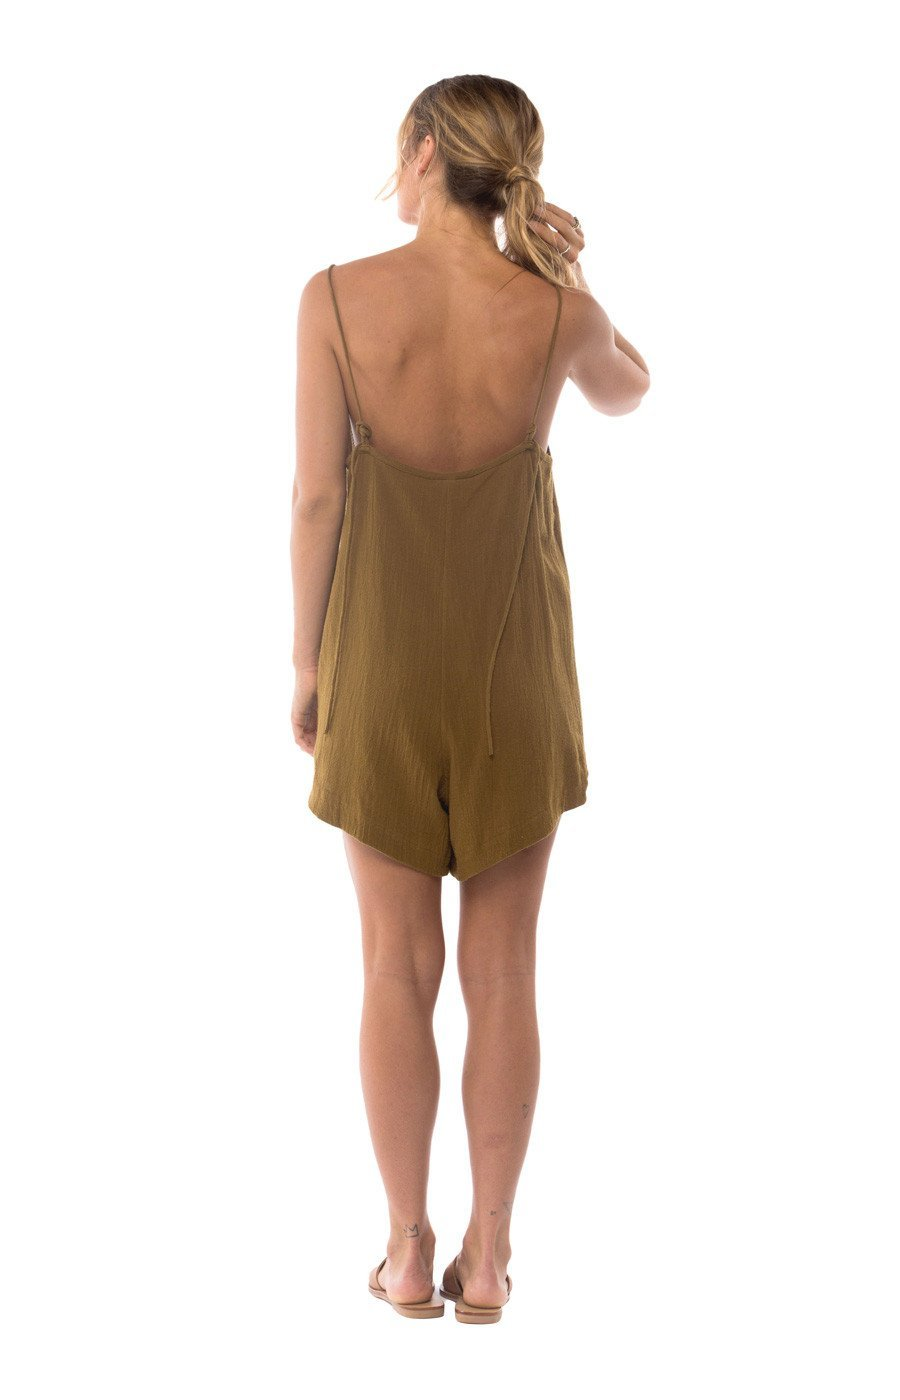 The Bare Road Bay Playsuit Fawn